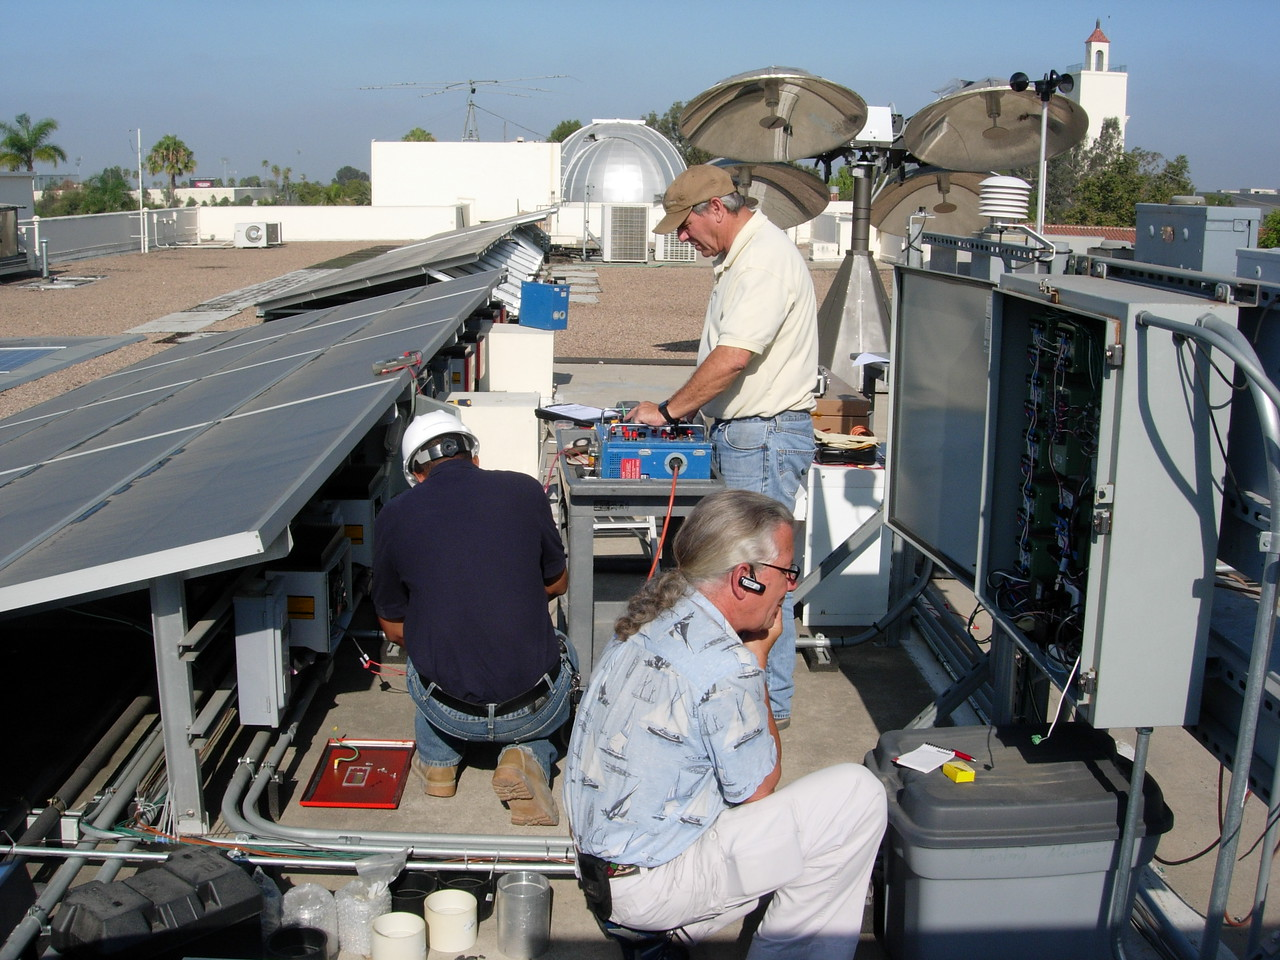 Bill Lekas, SDSU Physical Plant, Monitors the calibration of the 7 solar array data acquisition system.